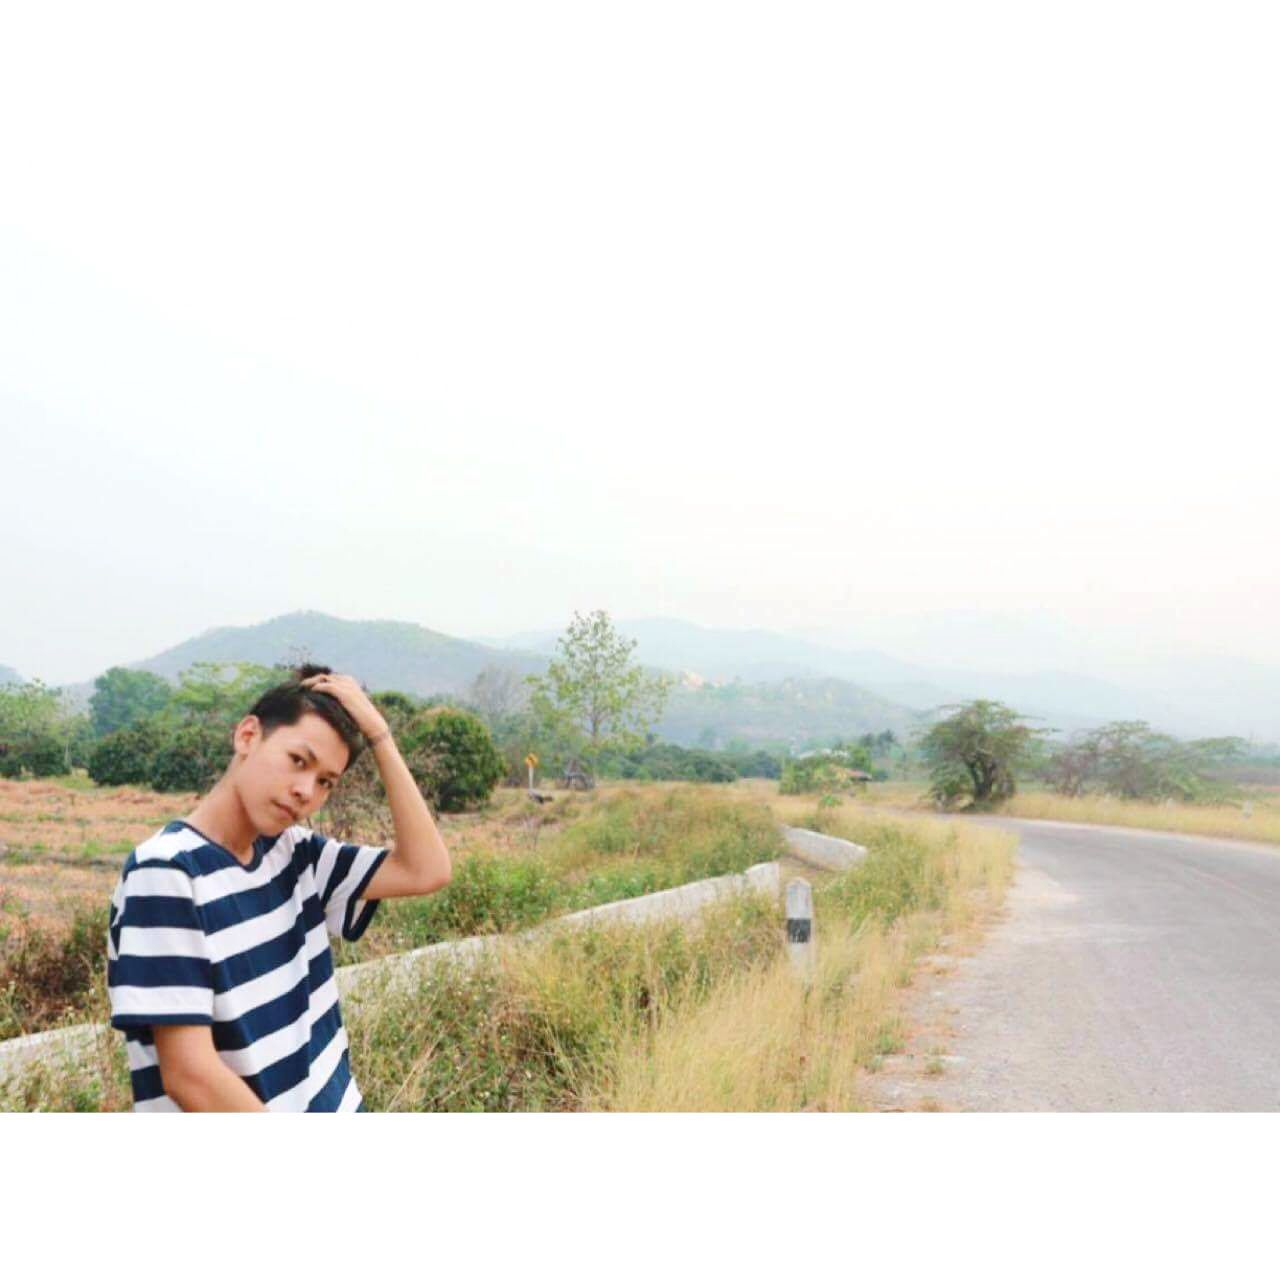 casual clothing, one person, real people, leisure activity, striped, young adult, young women, mountain, outdoors, day, landscape, nature, full length, standing, clear sky, road, happiness, scenics, adventure, lifestyles, beautiful woman, sky, grass, smiling, beauty in nature, tree, adult, people